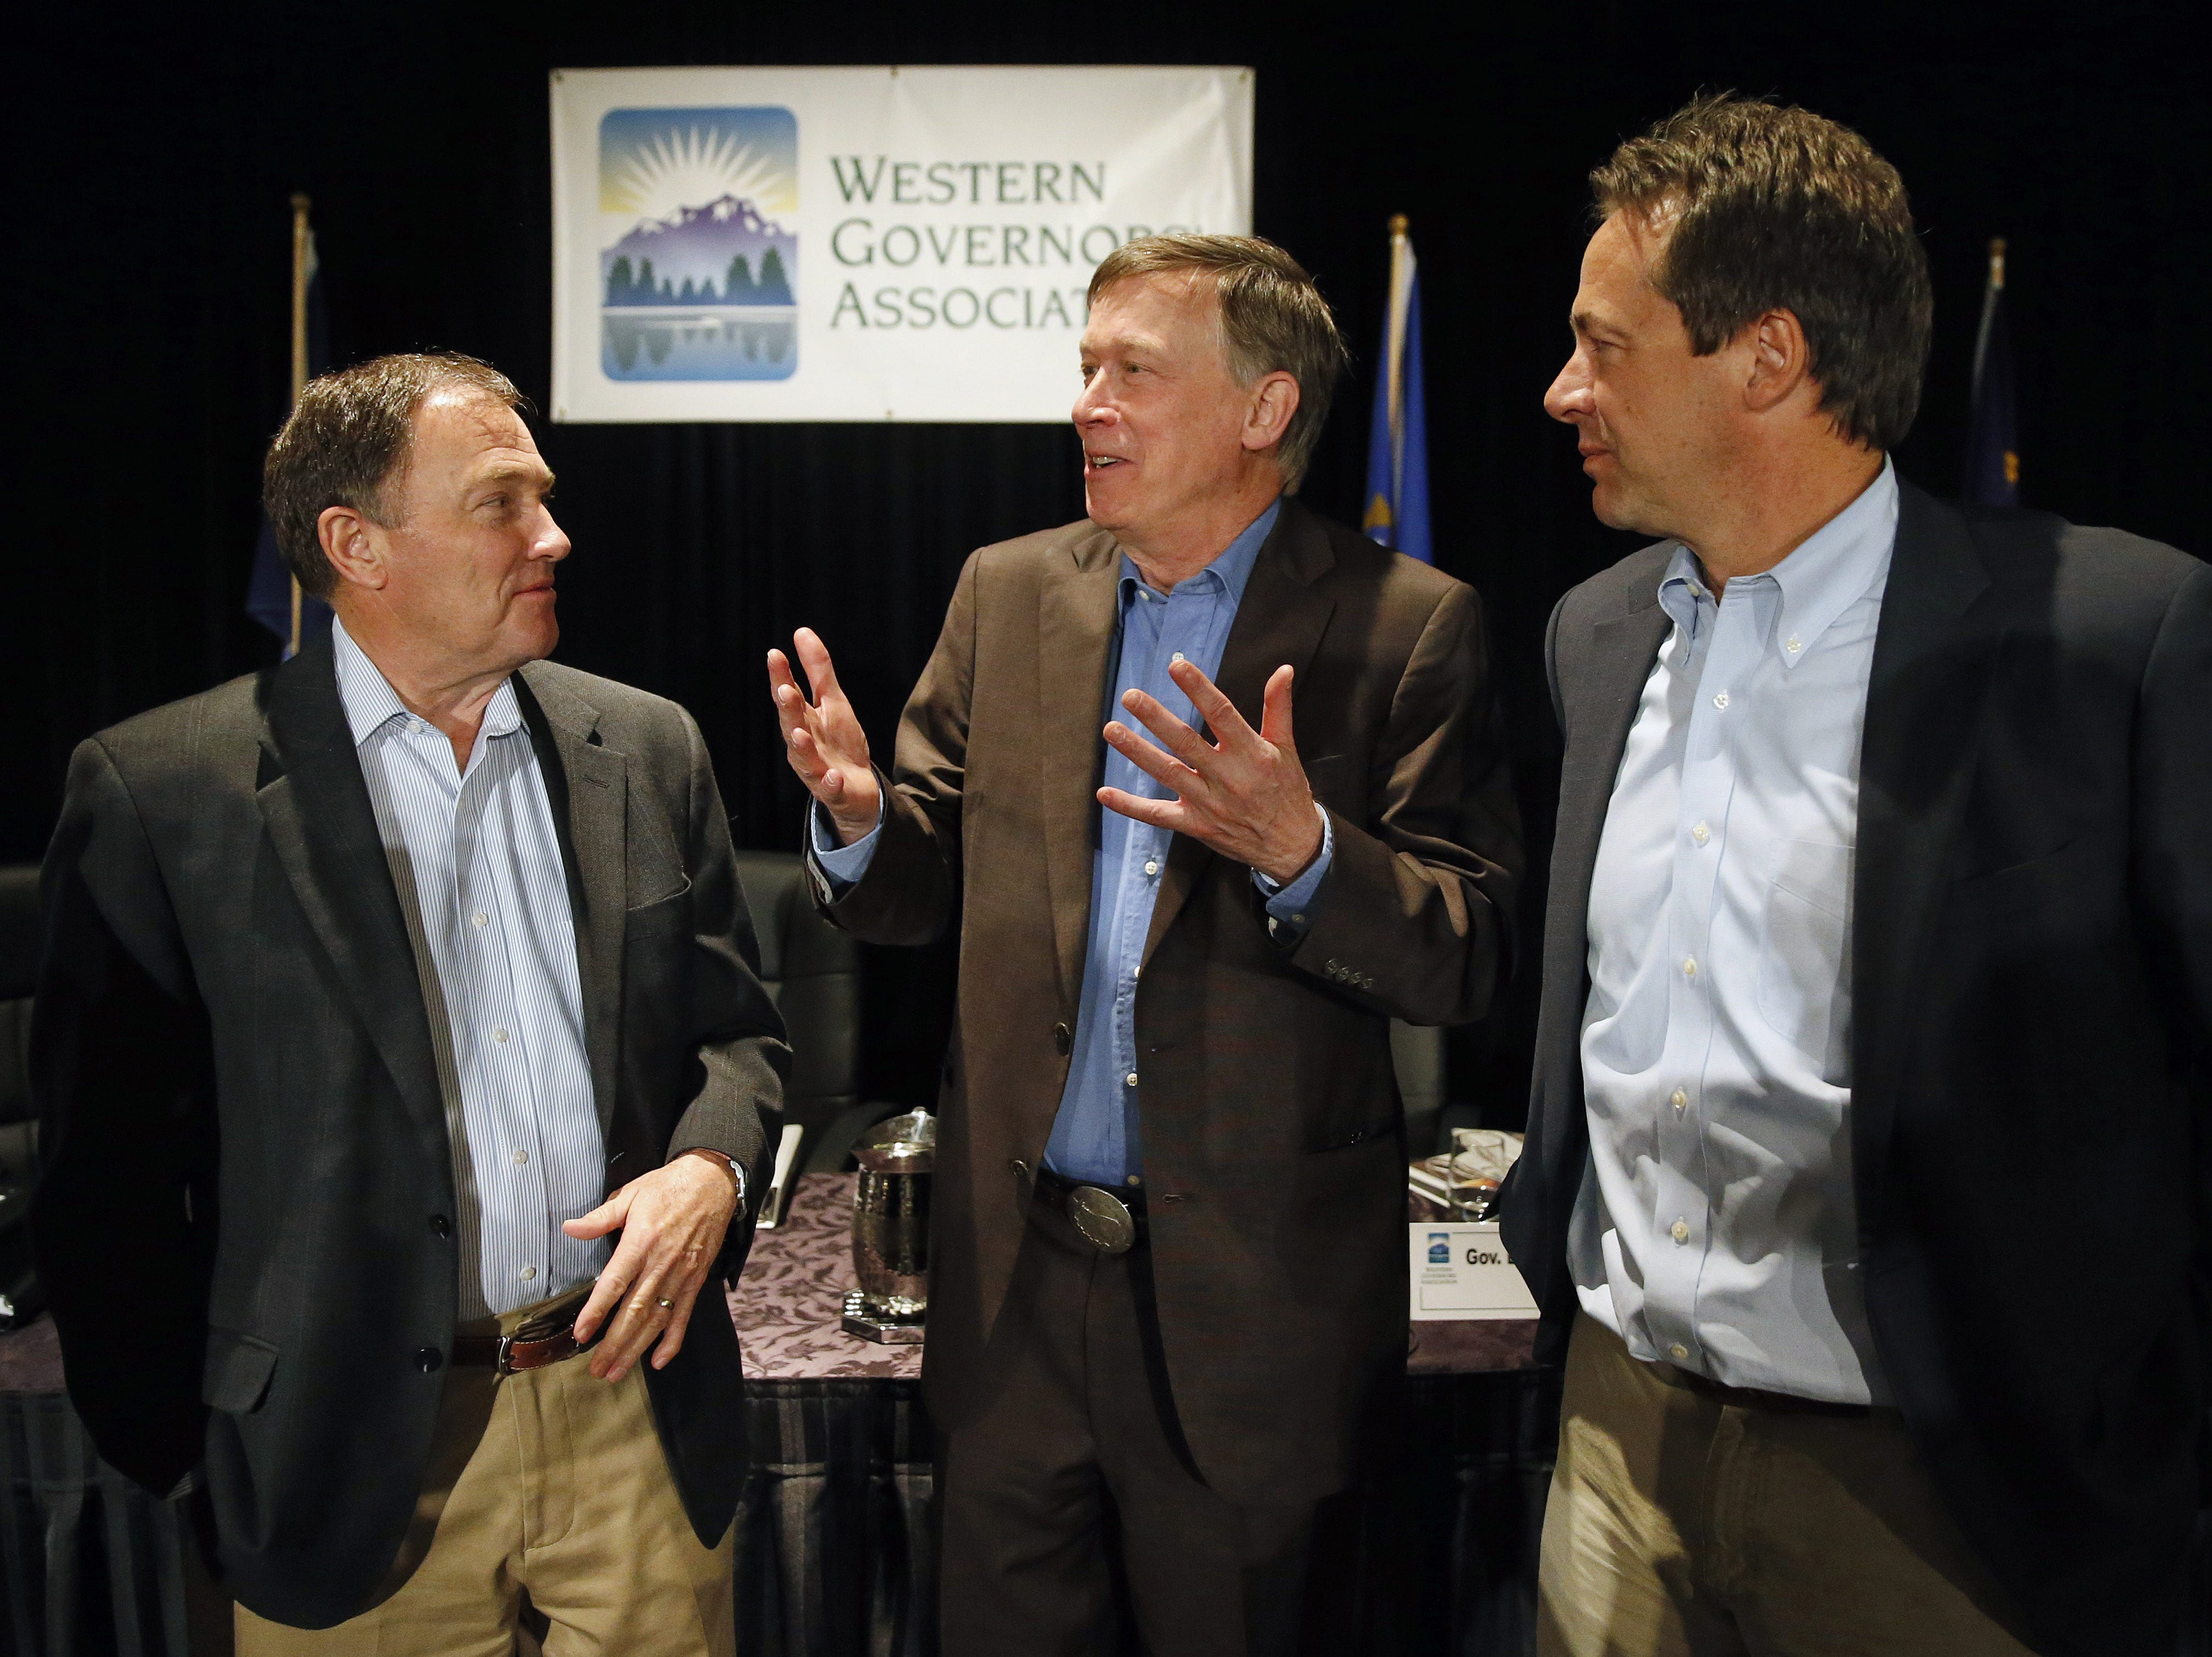 AP Photo/Brennan Linsley Colo. Gov. John Hickenlooper, center, talks with fellow Govs. Gary Herbert of Utah, left, and Montana?s Steve Bullock in Colorado Springs on June 10, 2014. Colo. Gov. John Hickenlooper, center, talks with fellow Governors Gary Herbert of Utah, left, and Montana's Steve Bullock, during the annual Western Governors' Association Meeting, at the Broadmoor Hotel in Colorado Springs, Tuesday, June 10, 2014. Ten governors from western states attended the second day of the conference Tuesday, discussing common regional issues. (AP Photo/Brennan Linsley)